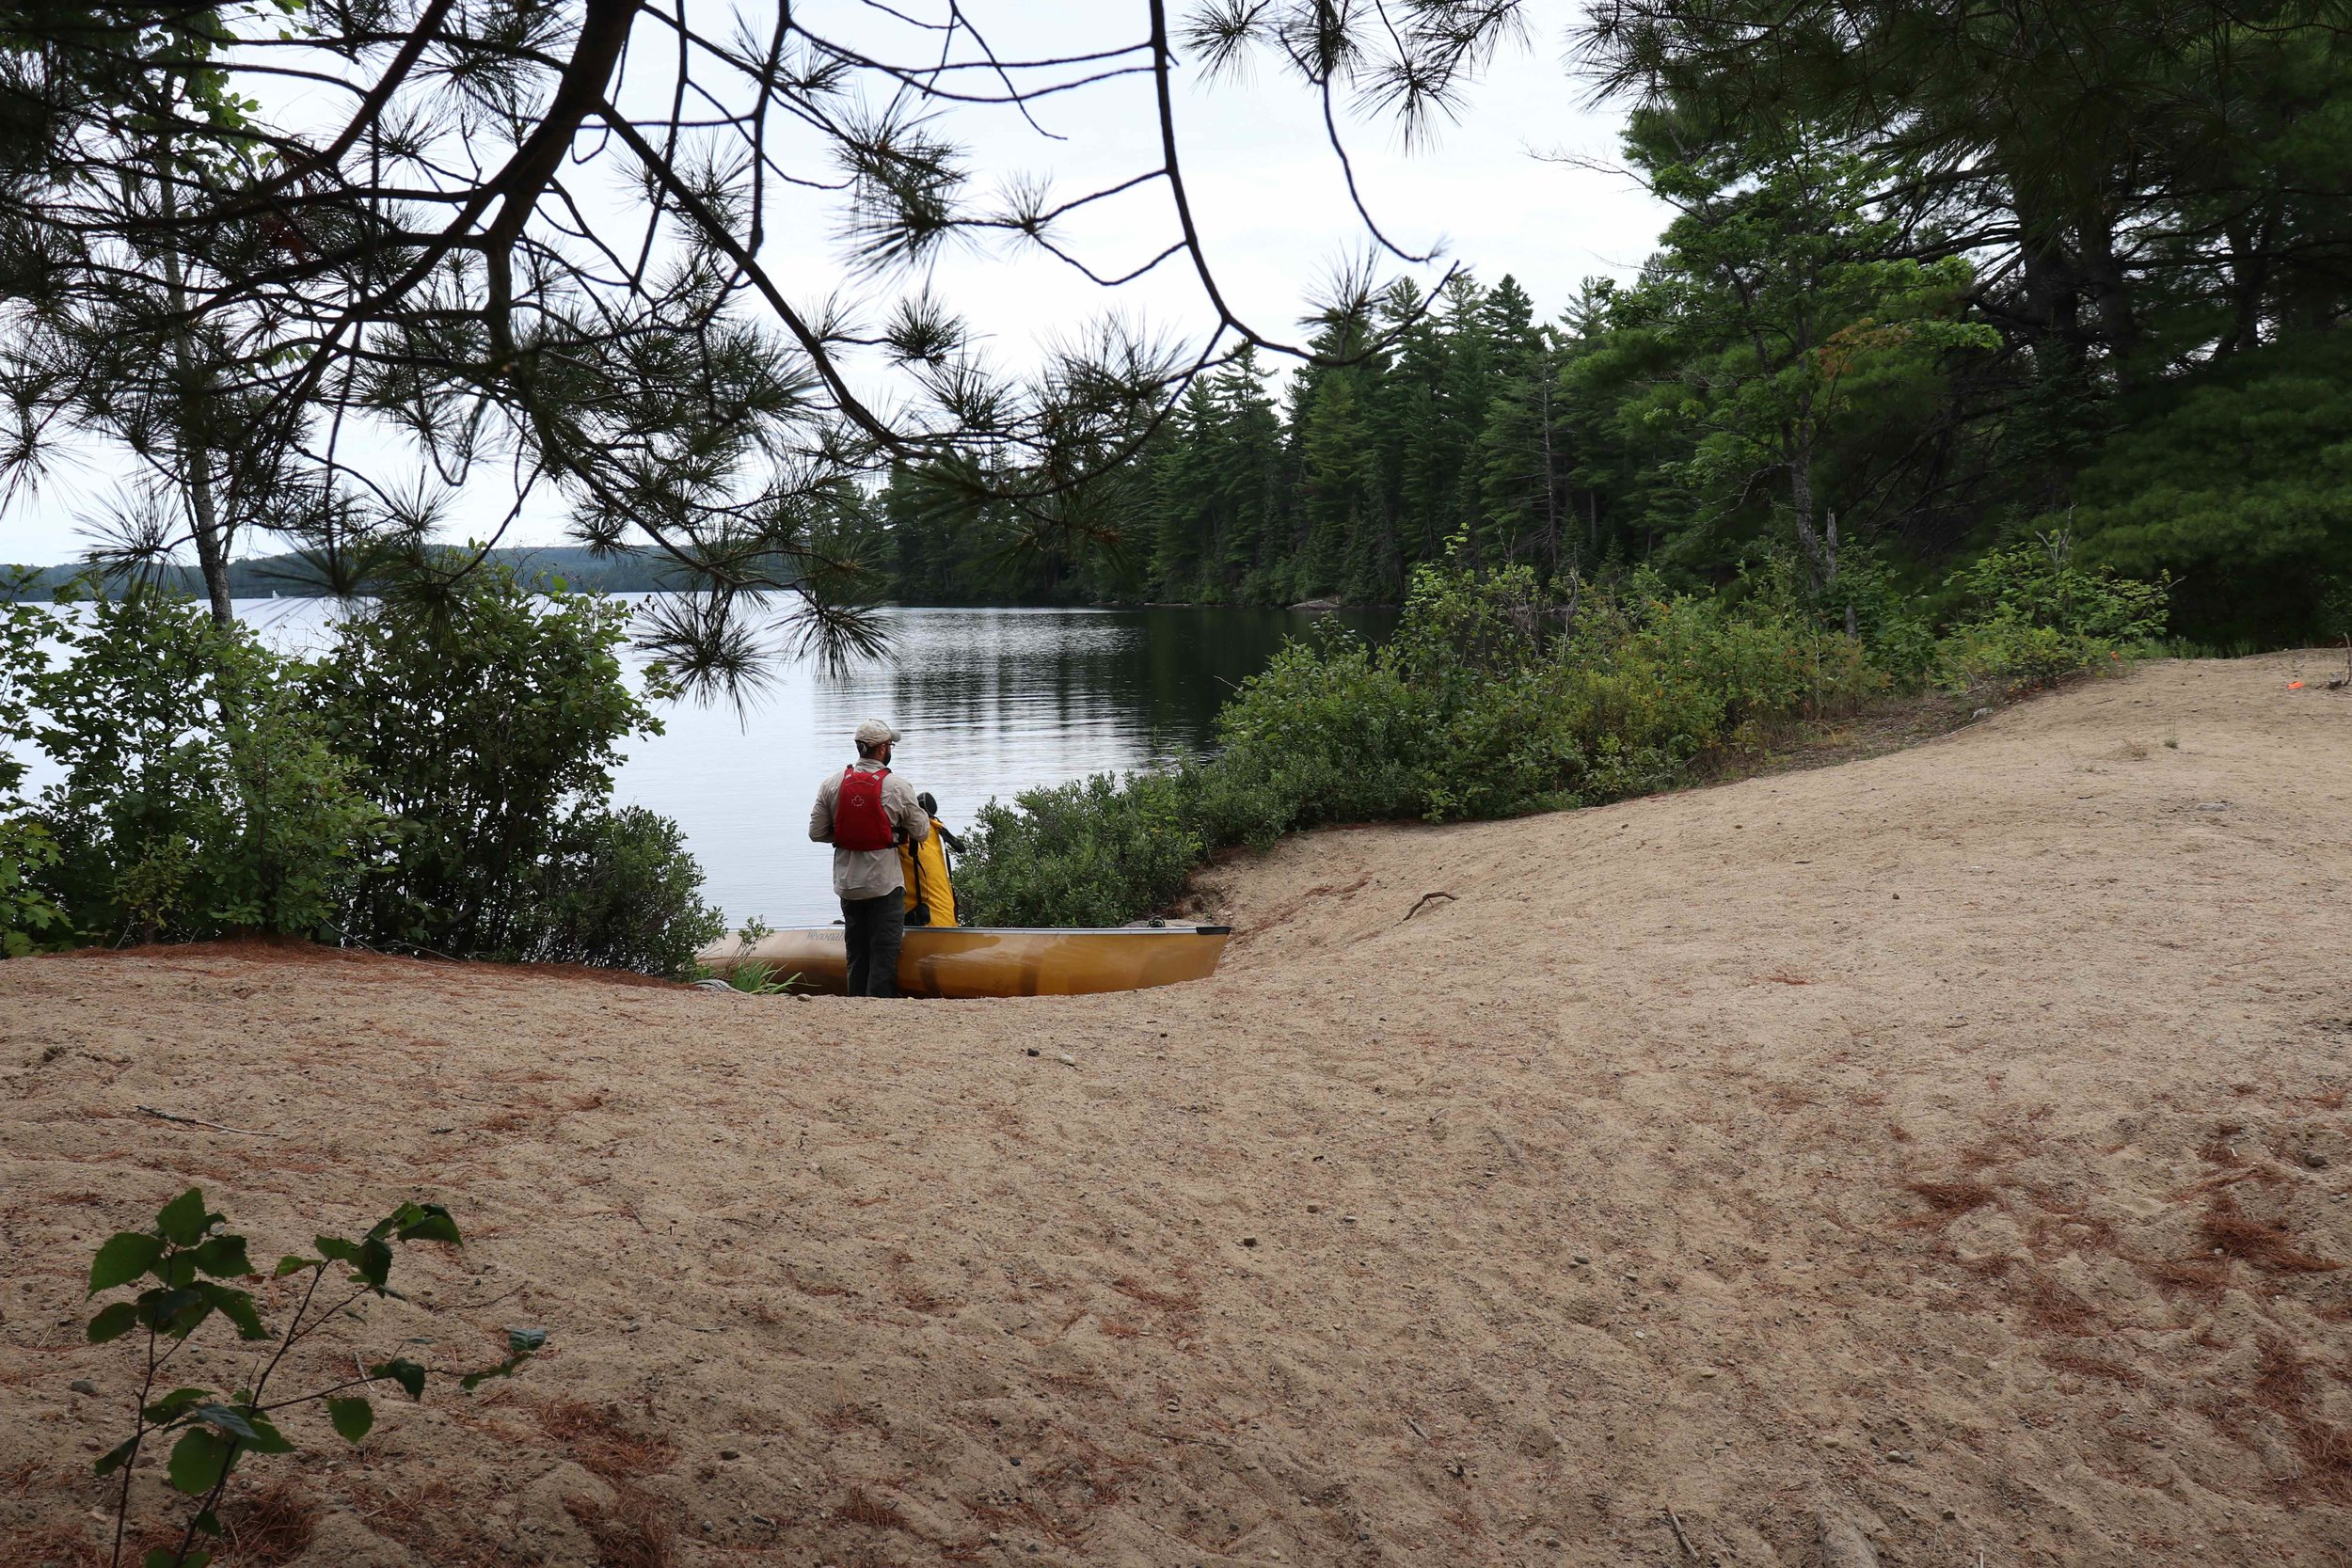 Portage coming out of Source Lake